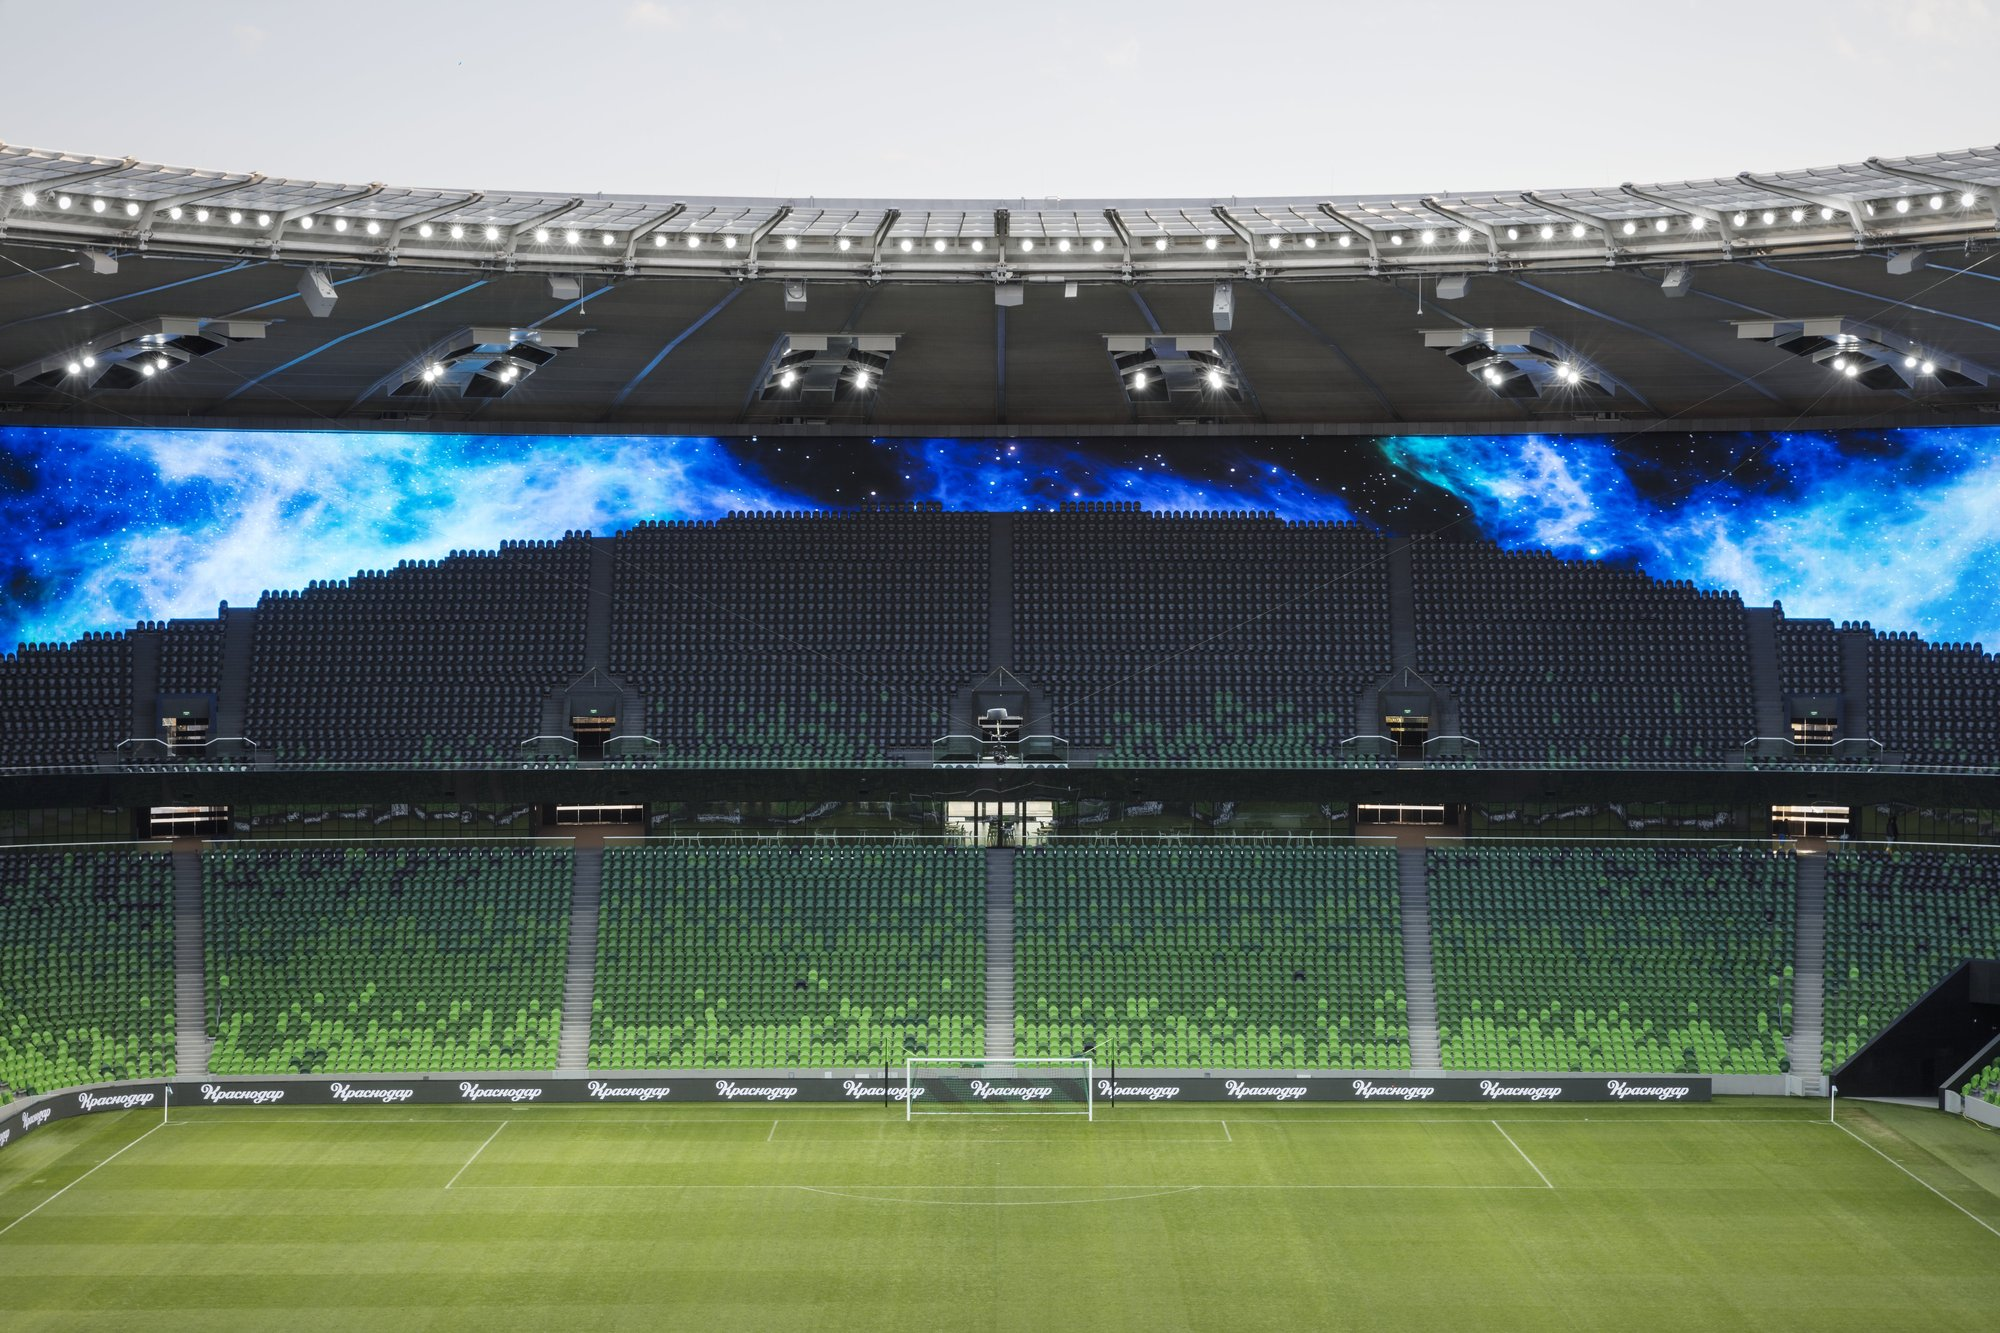 Gallery Of Krasnodar Fc Stadium And Park Von Gerkan Marg And Partners Architects Gmp 15